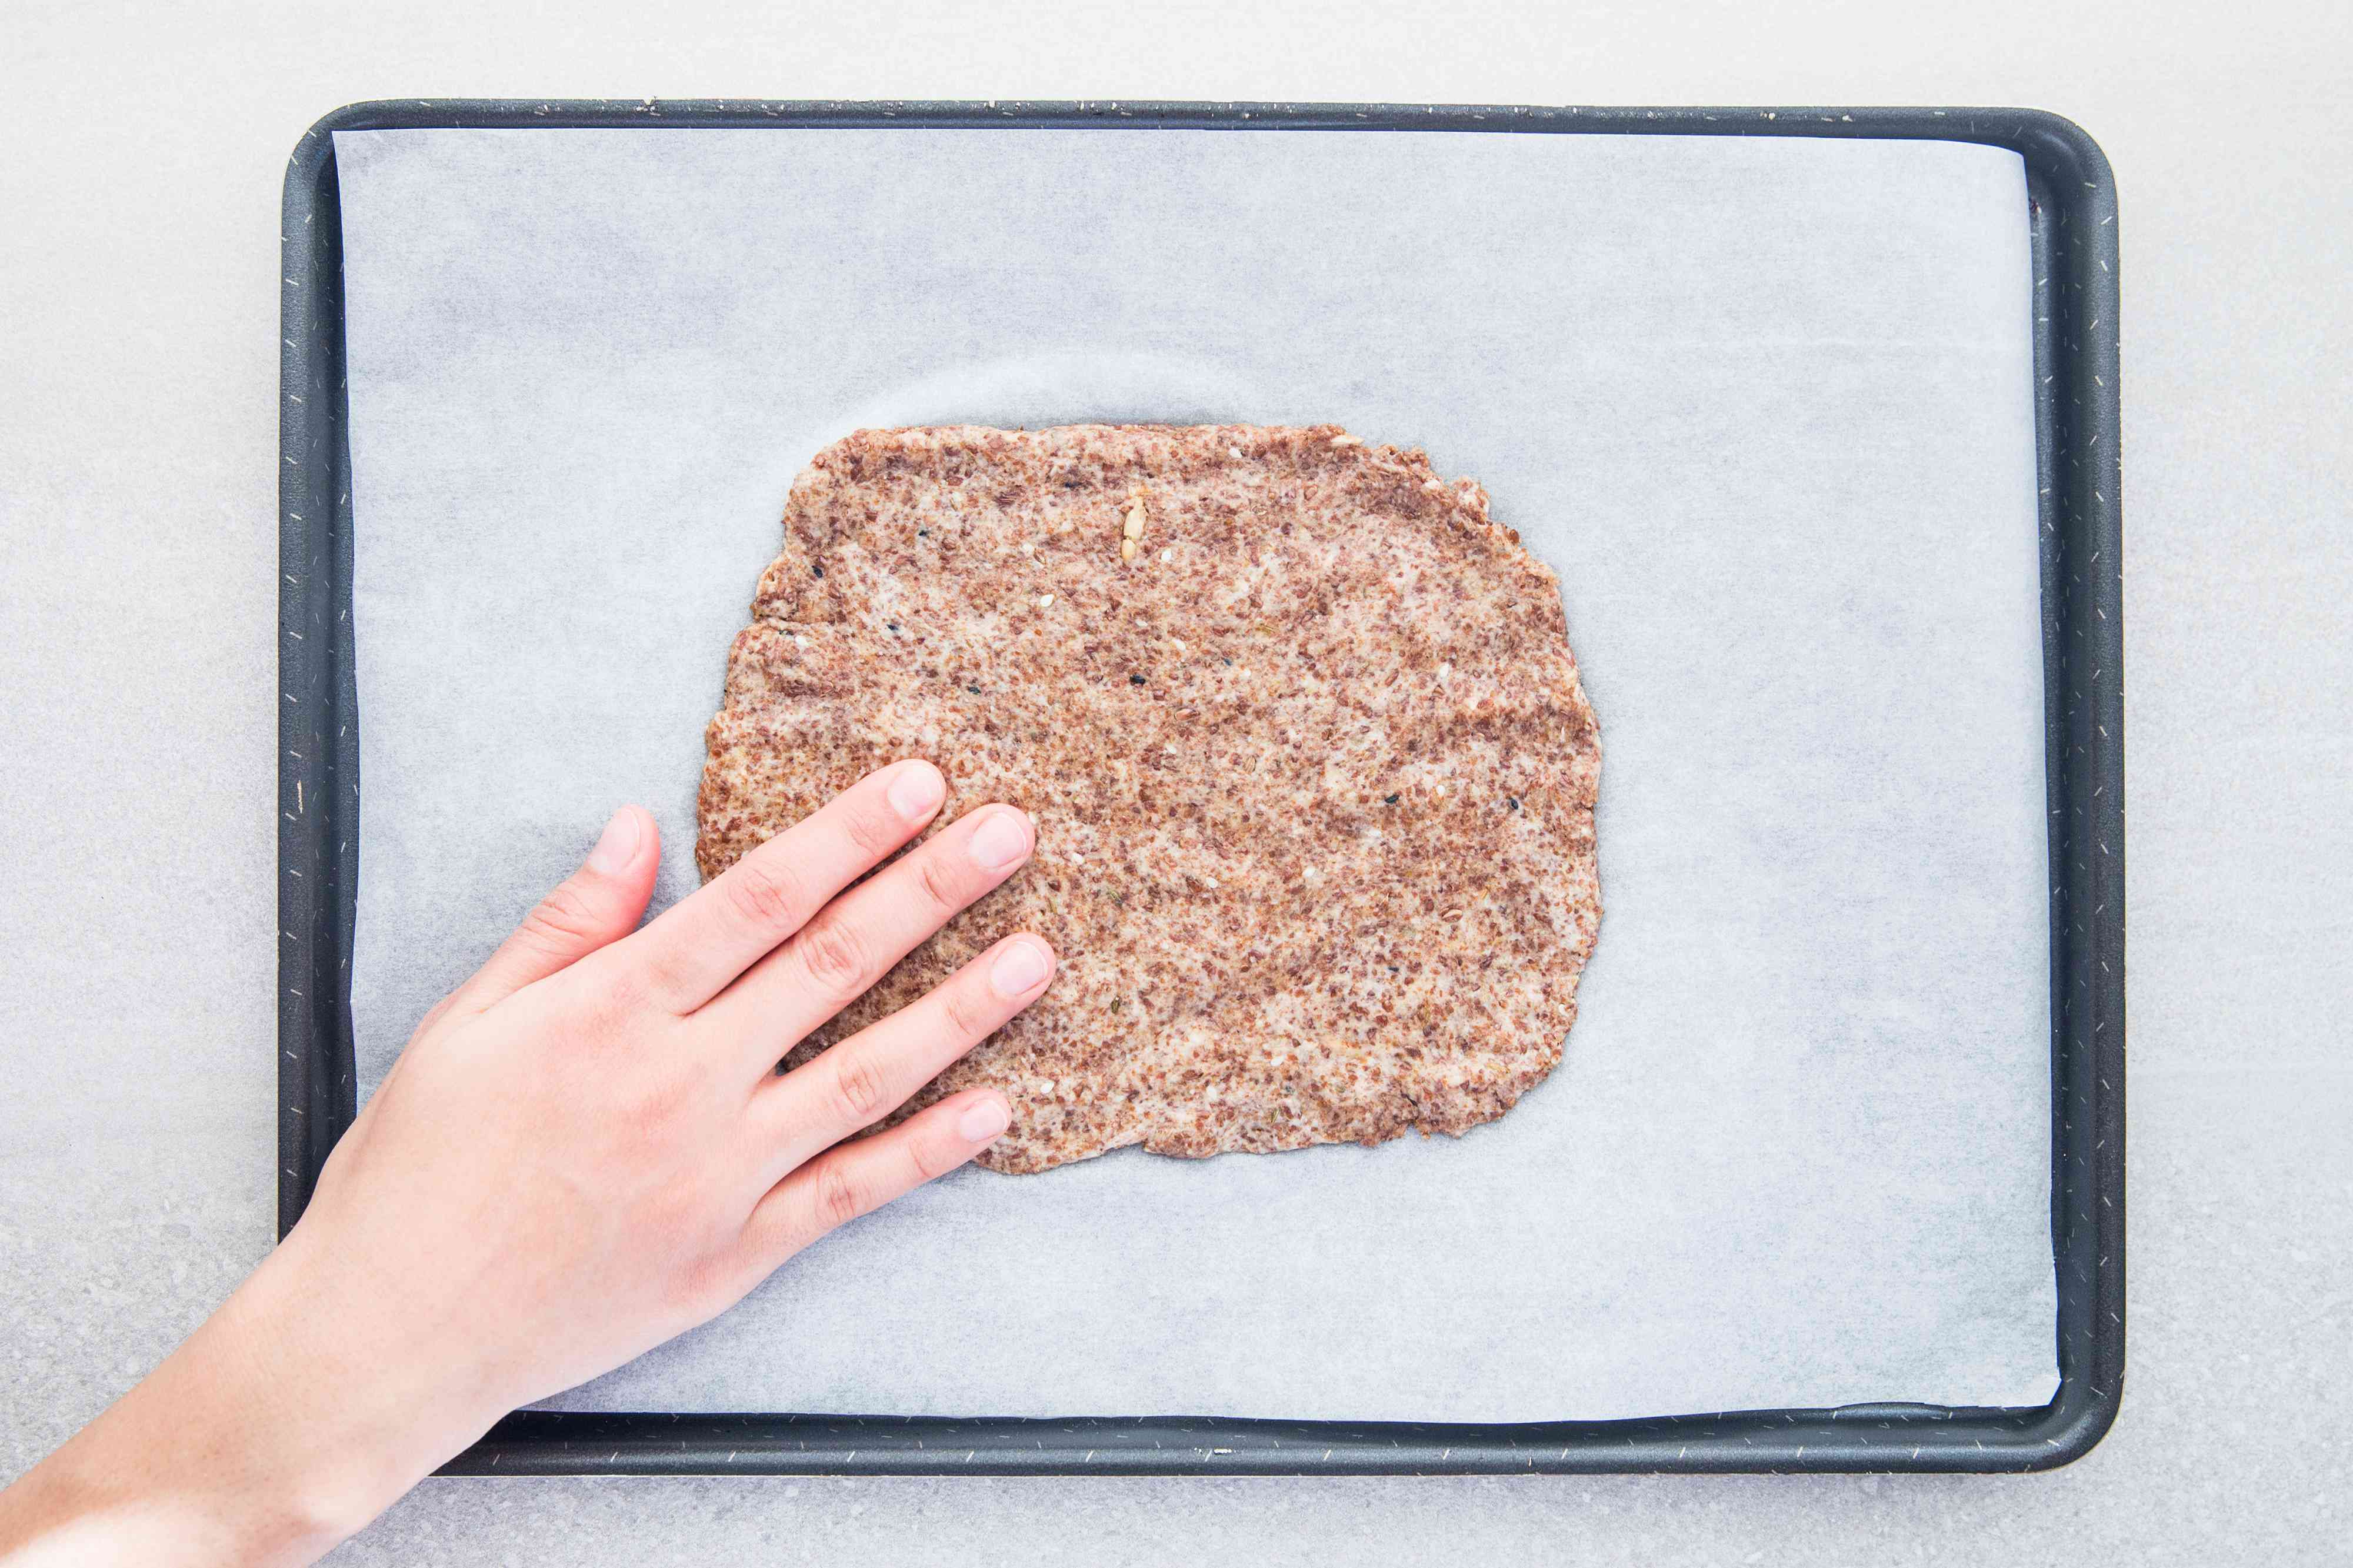 Cracker dough on a baking sheet lined with a parchment paper